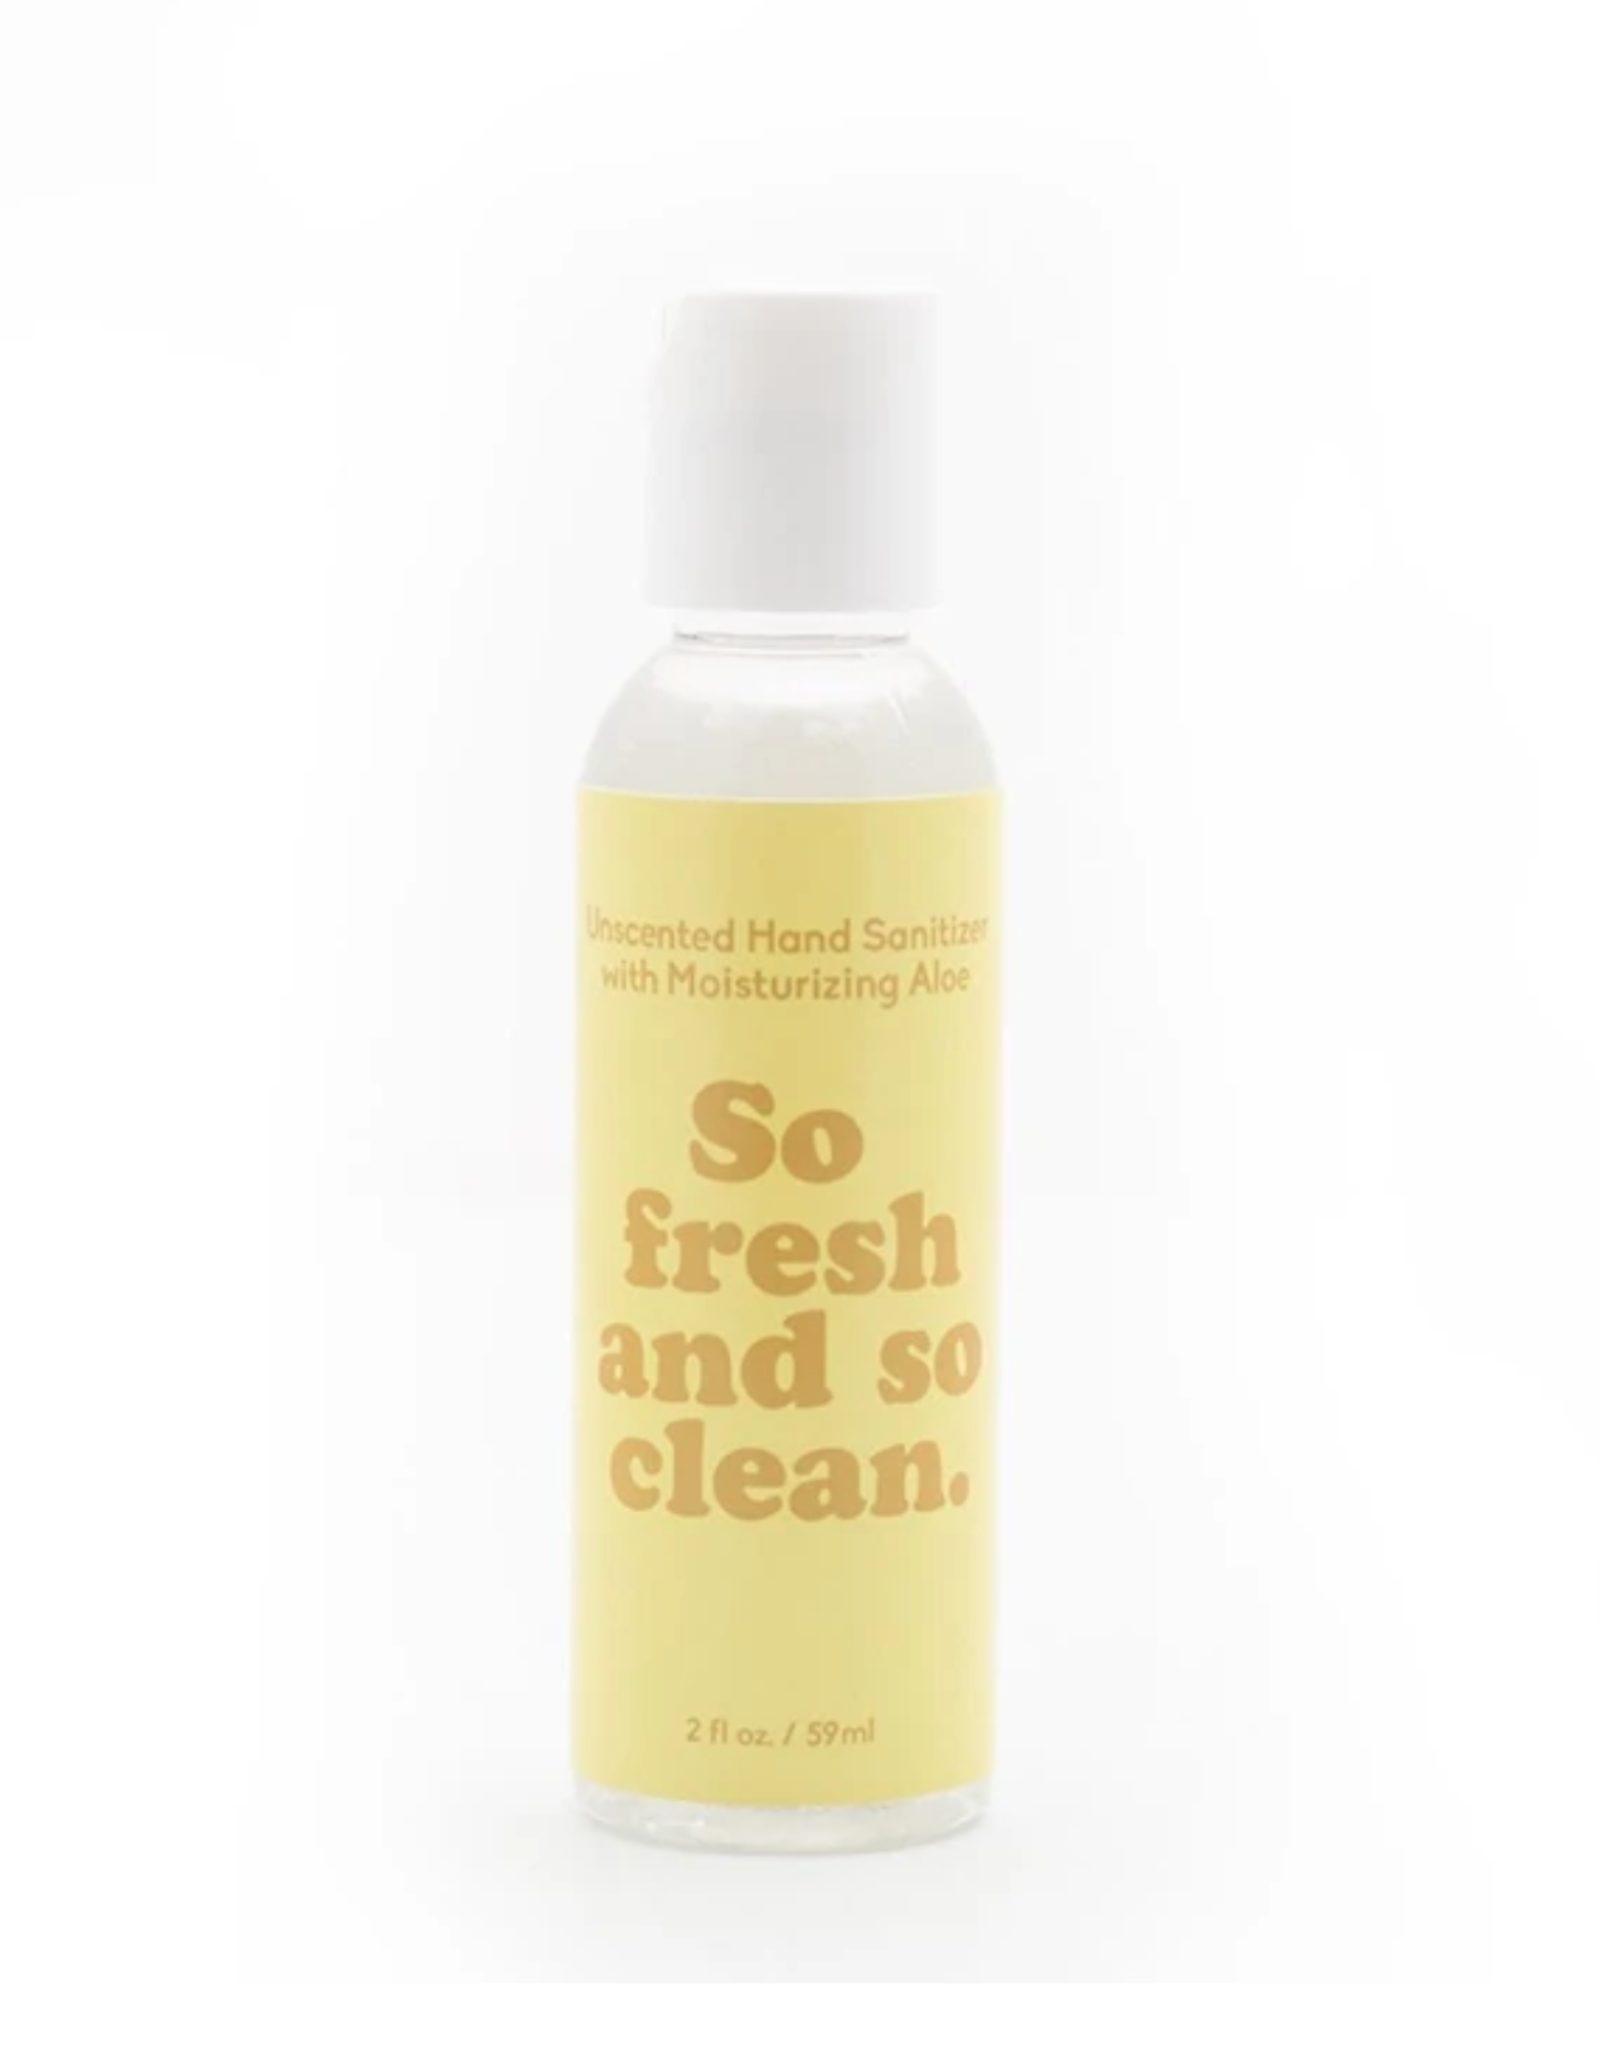 HAND SANITIZER PHRASES SO FRESH AND SO CLEAN YELLOW  BOTTLE 2OZ